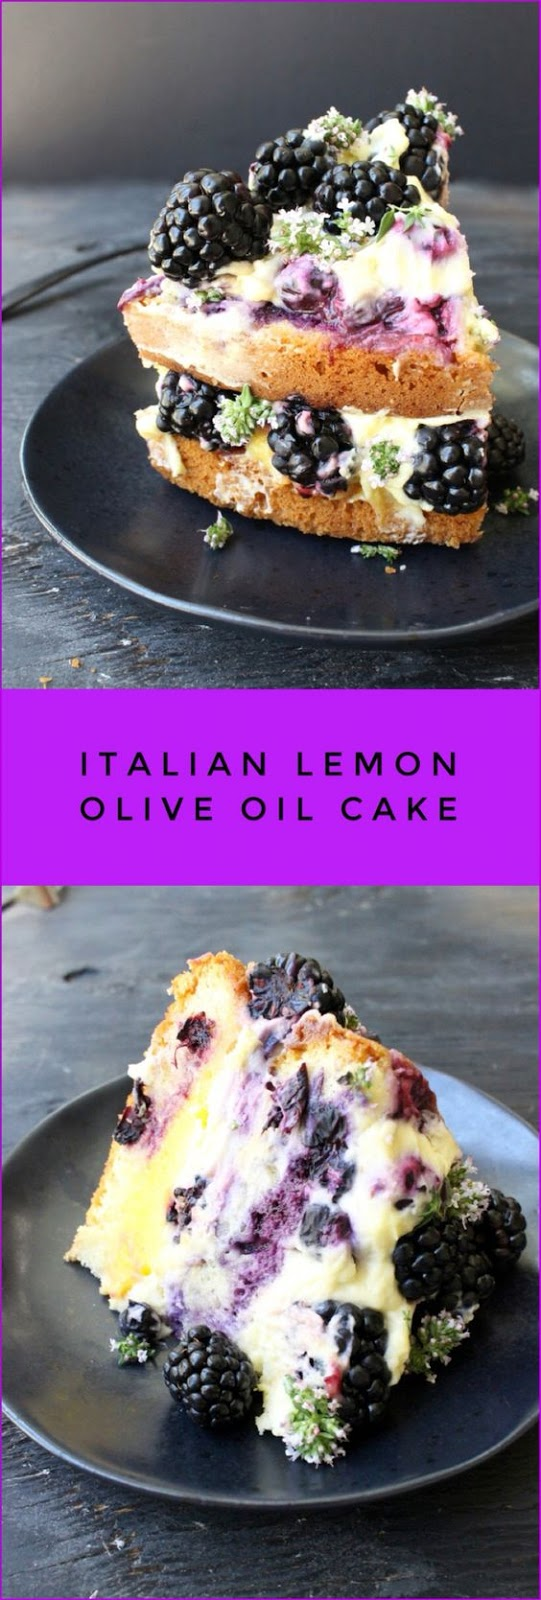 Best Italian Lemon Olive Oil Cake Recipe with Berries